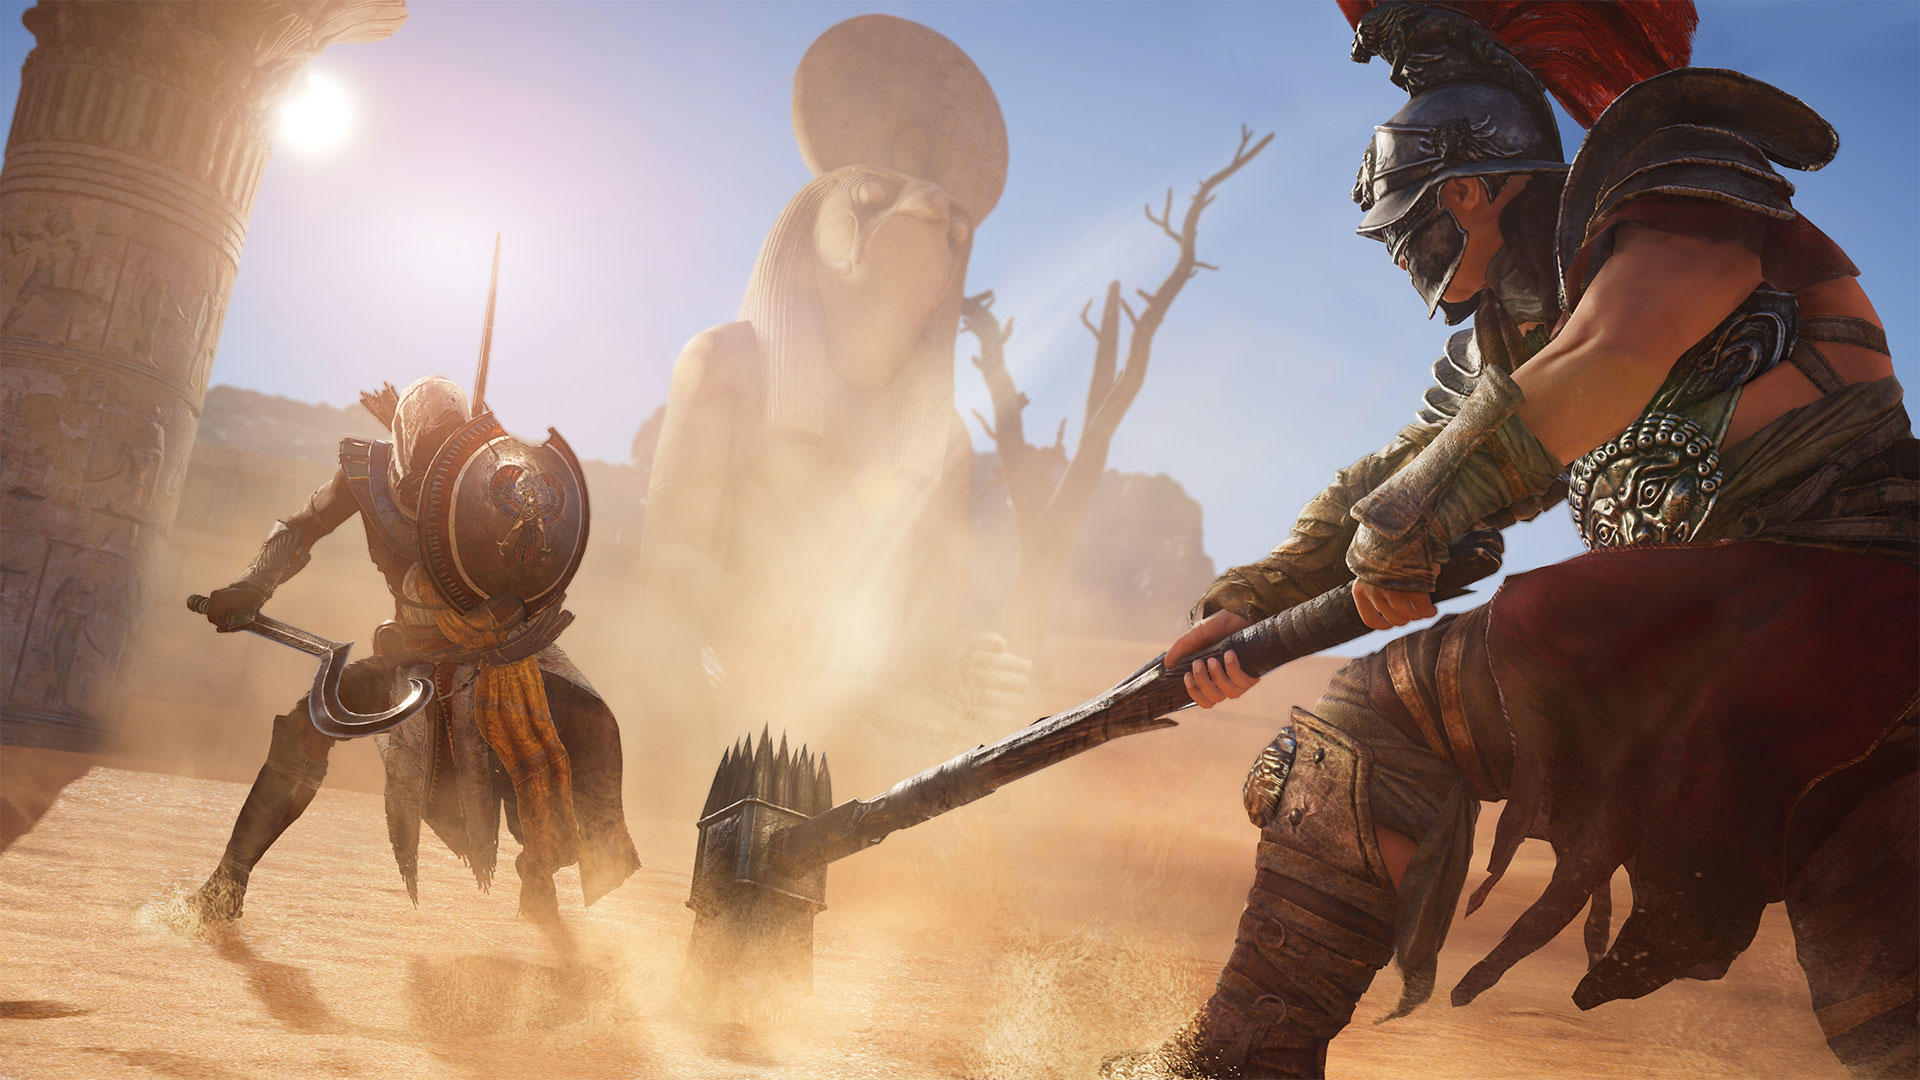 Thưởng thức trailer cinematic của Assassin's Creed: Origins